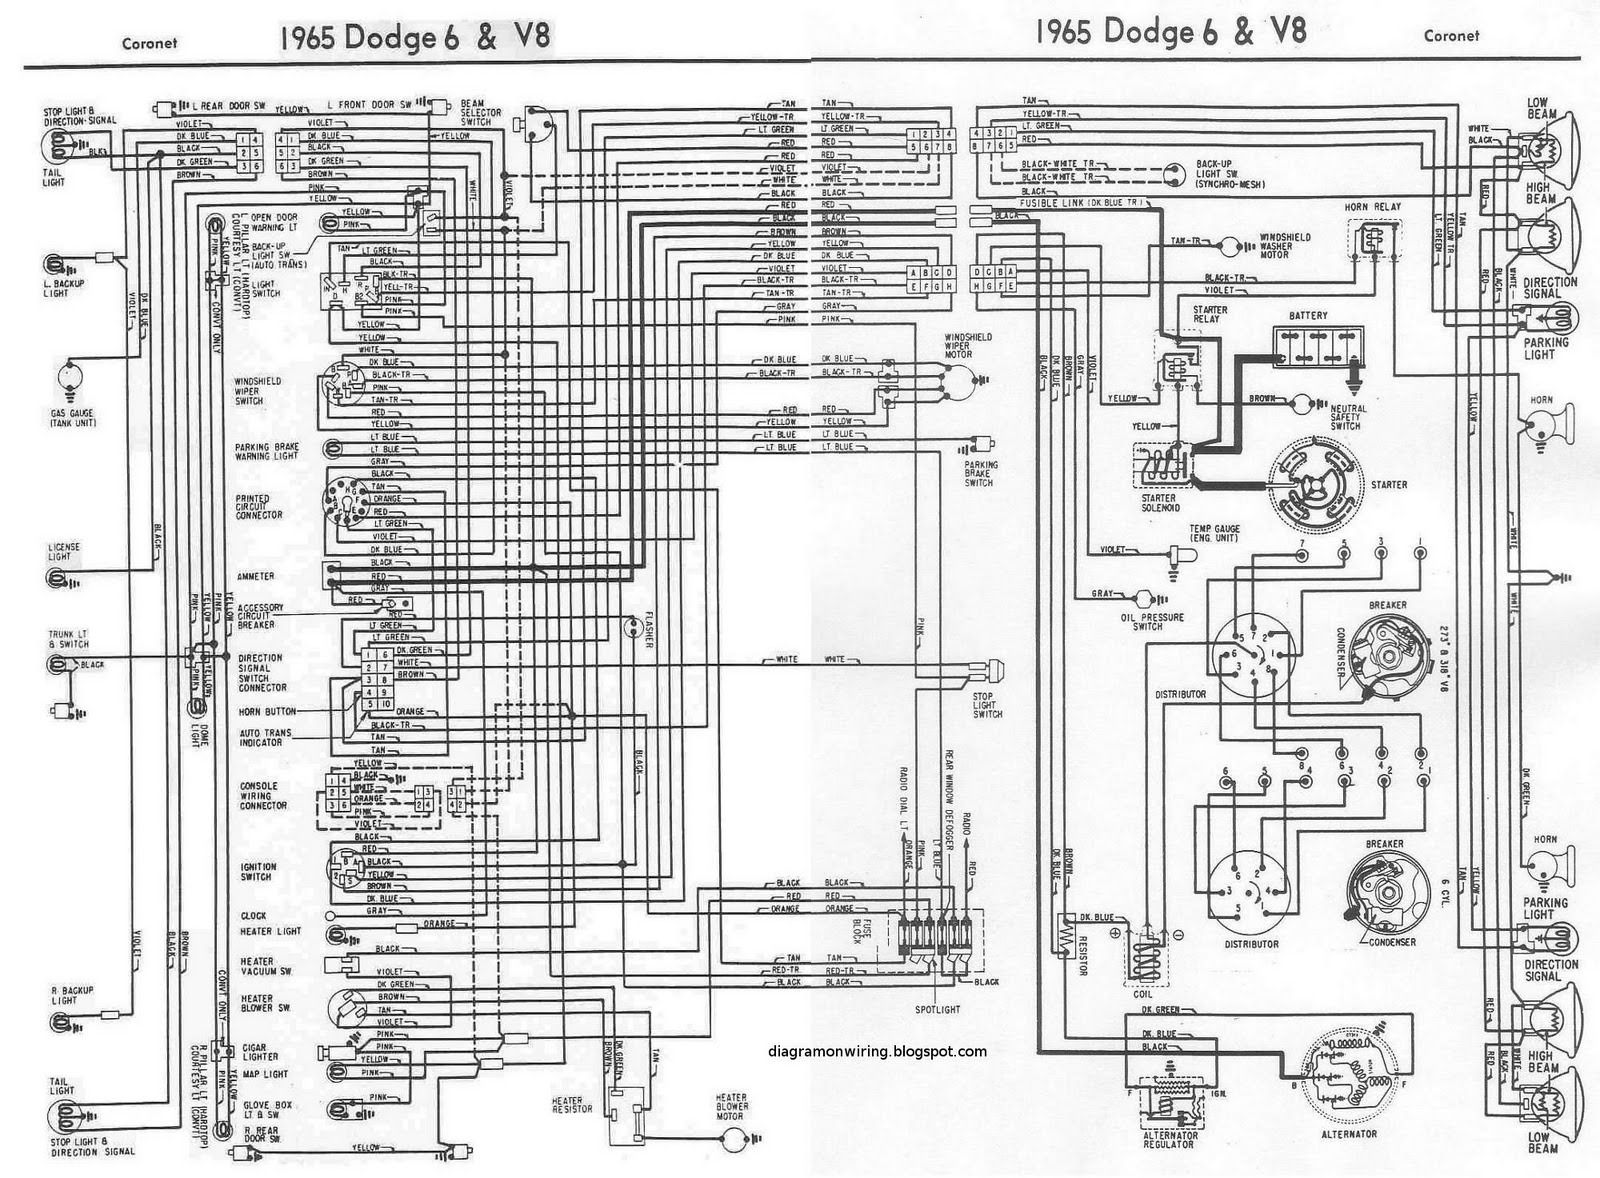 1969 dodge wiring diagram wiring diagram box1969 dodge wiring schematic  schematic diagram data 1969 dodge dart